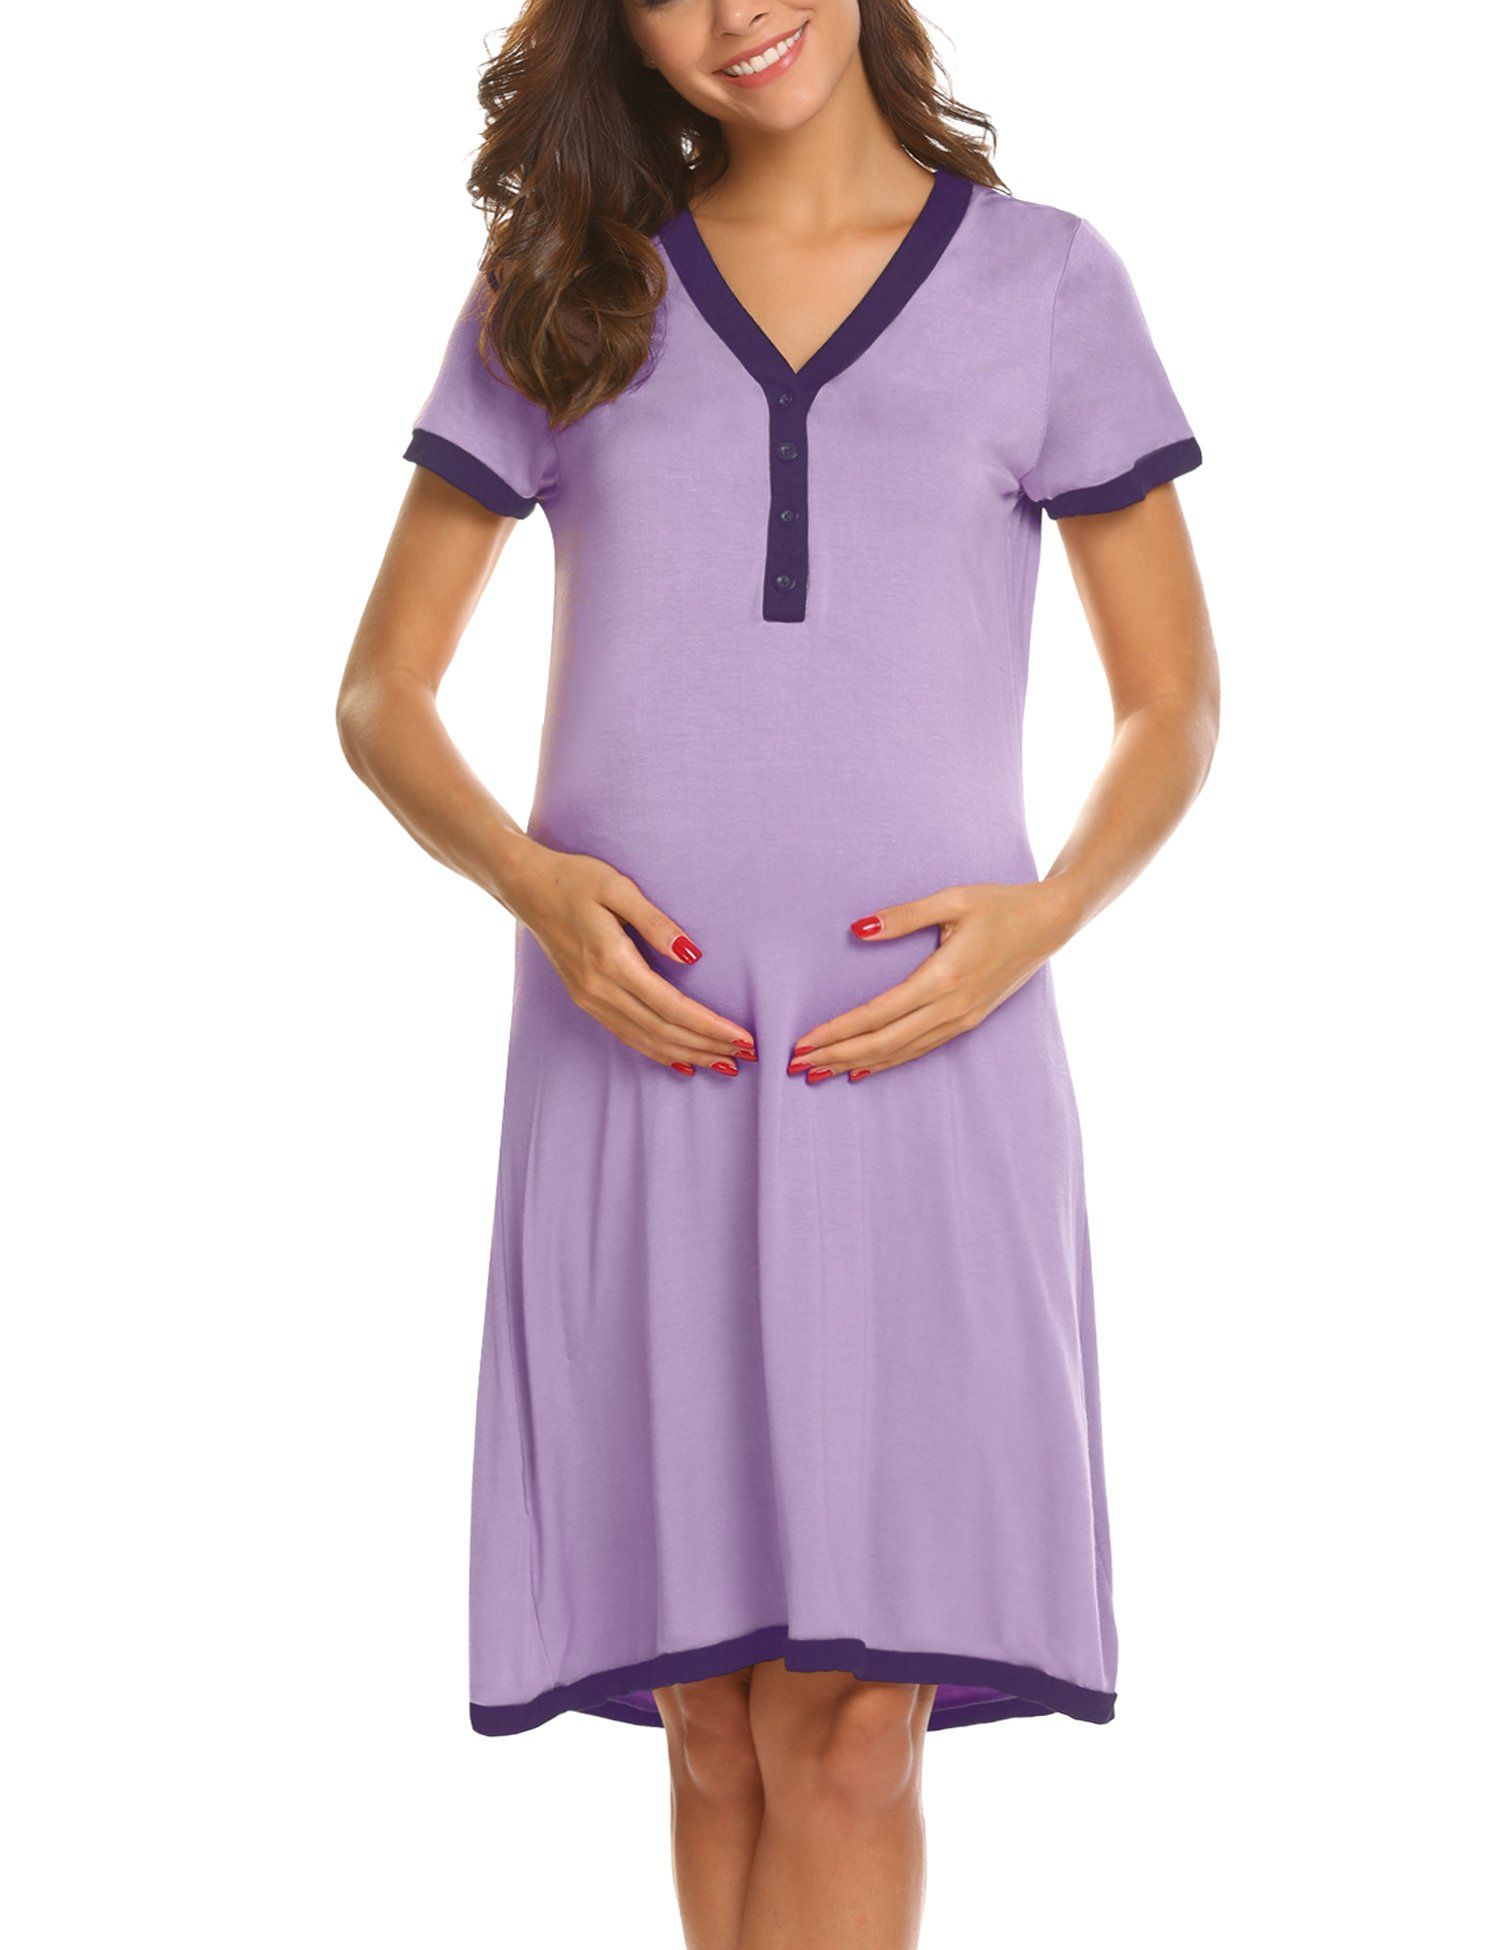 e65d02c29f703 hospital bag - Ekouaer 2 in 1 Maternity Nursing Nightgown Nightdress  Hospital Bag Must Have Pregnancy Breastfeeding * Click picture to review  more details.